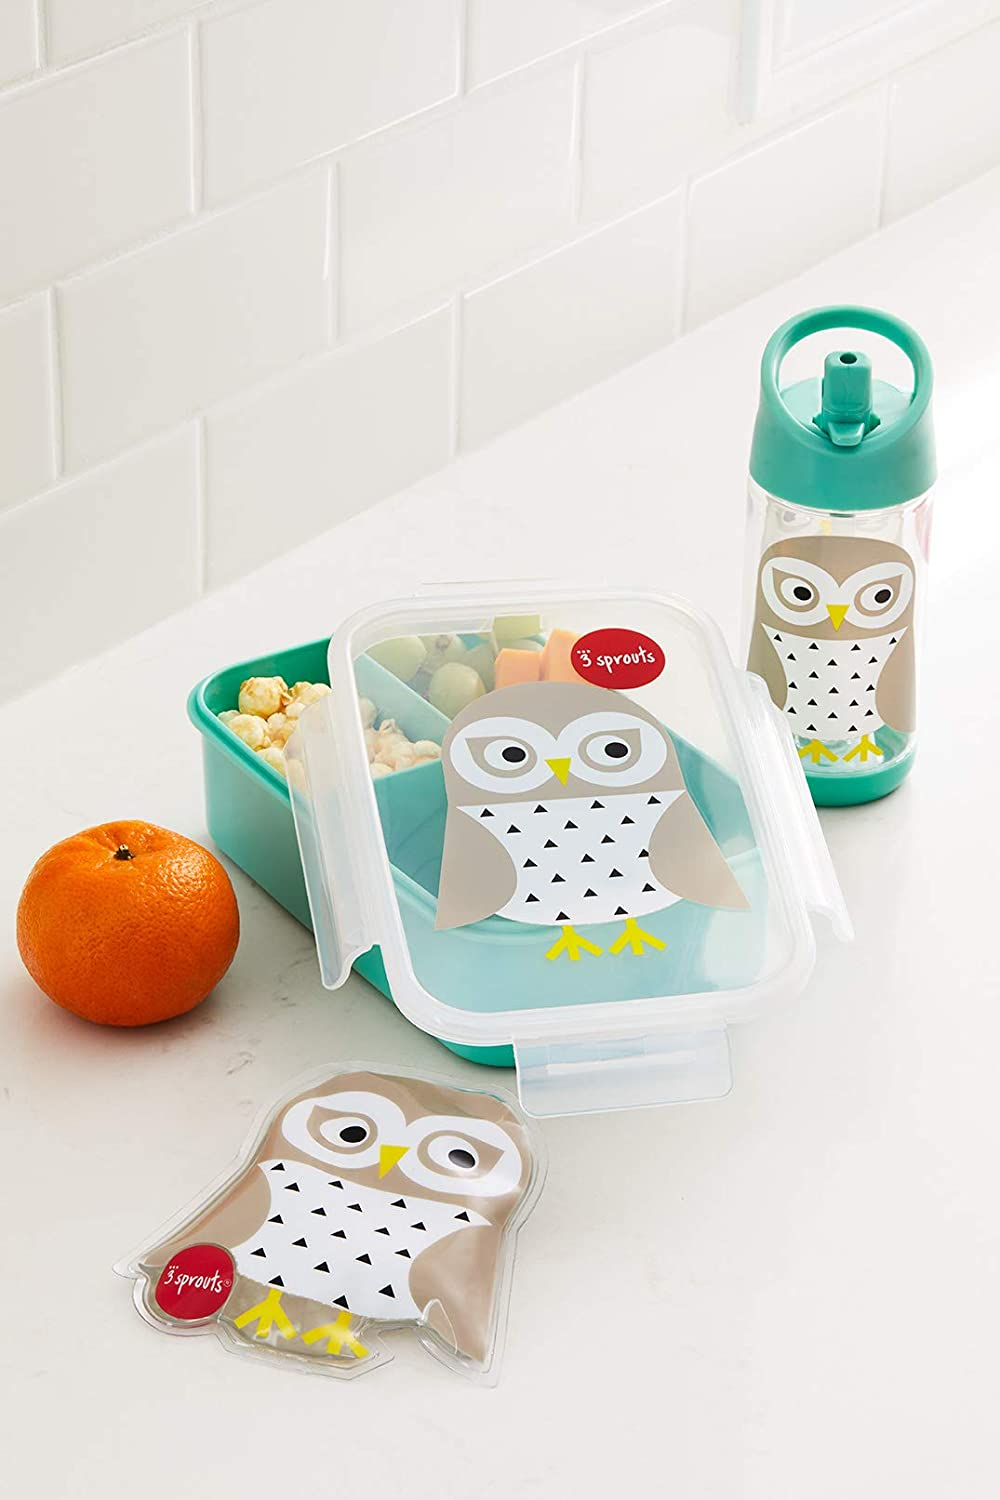 3 Sprouts Lunch Bento Box Leakproof 3 Compartment Lunchbox Container for Kids, Mint, Owl UBBOWL